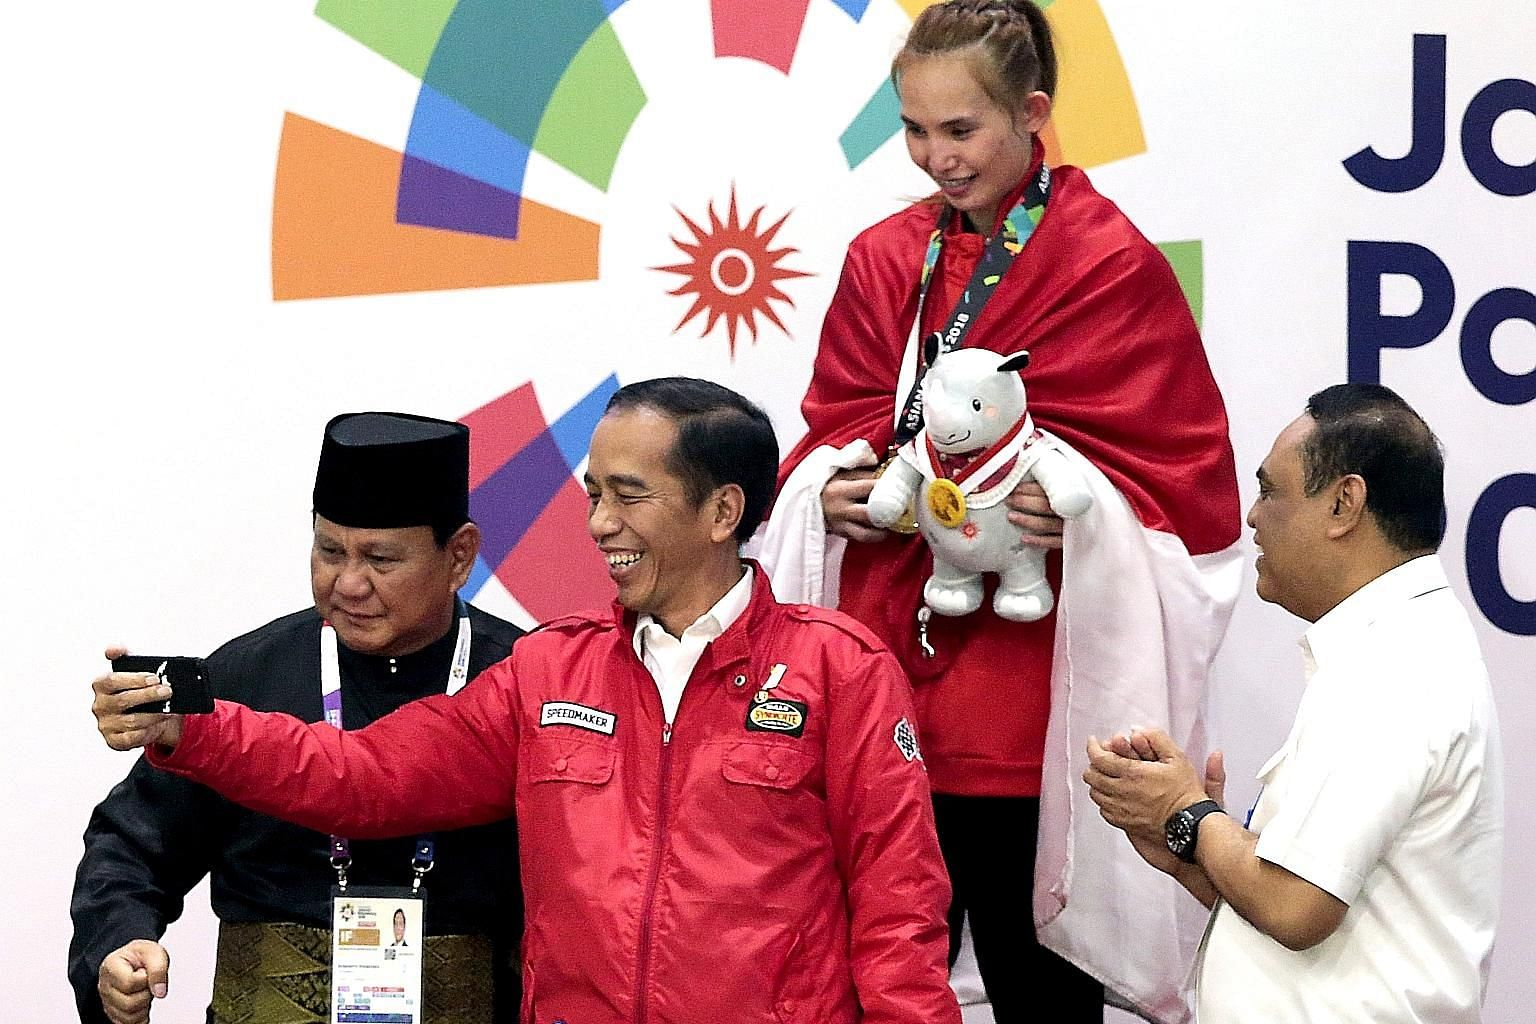 Indonesian President Joko Widodo and Indonesian Pencak Silat Association chairman Prabowo Subianto (far left) with Indonesian gold medallist Wewey Wita at the awards ceremony for the women's 50kg to 55kg Padepokan Pencak Silat event at the Asian Game